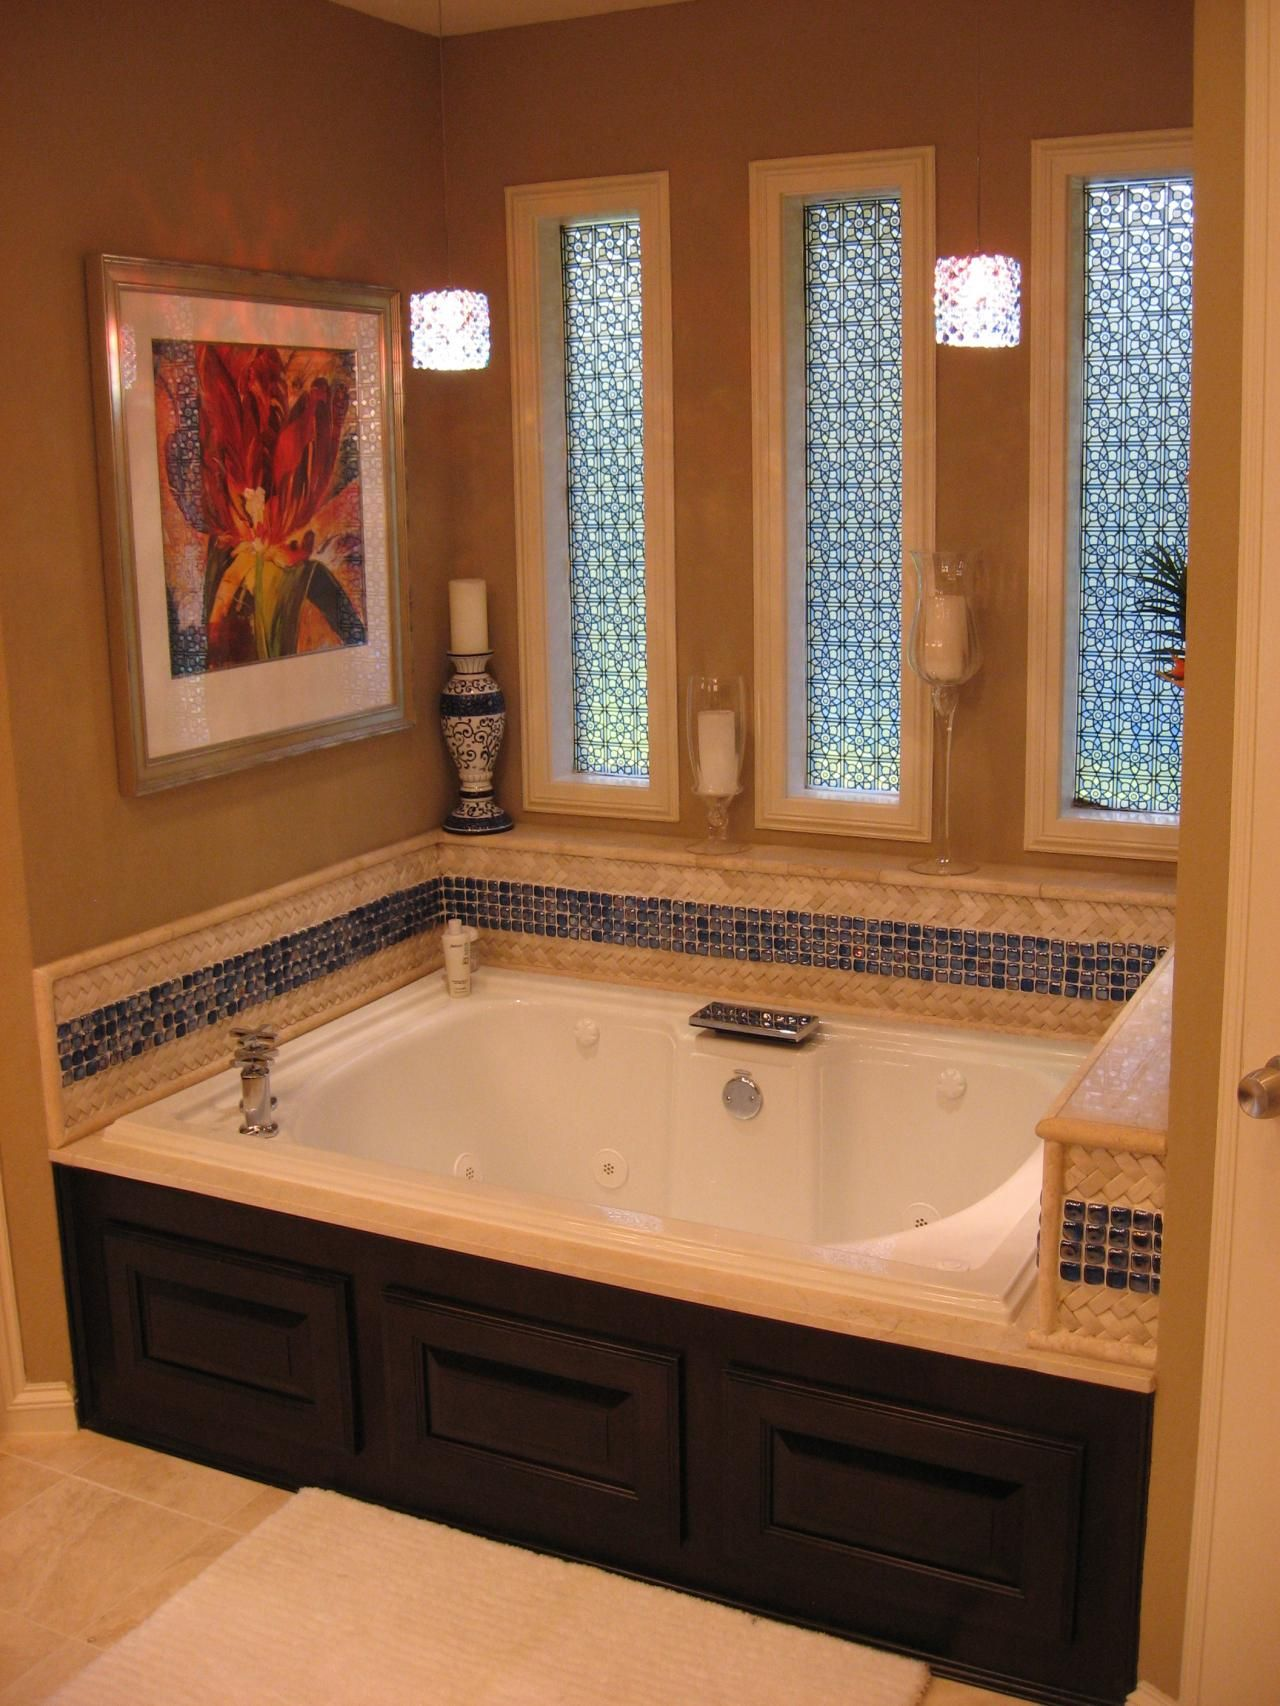 mosaic tiles bathroom alcove tub mosaic tiles